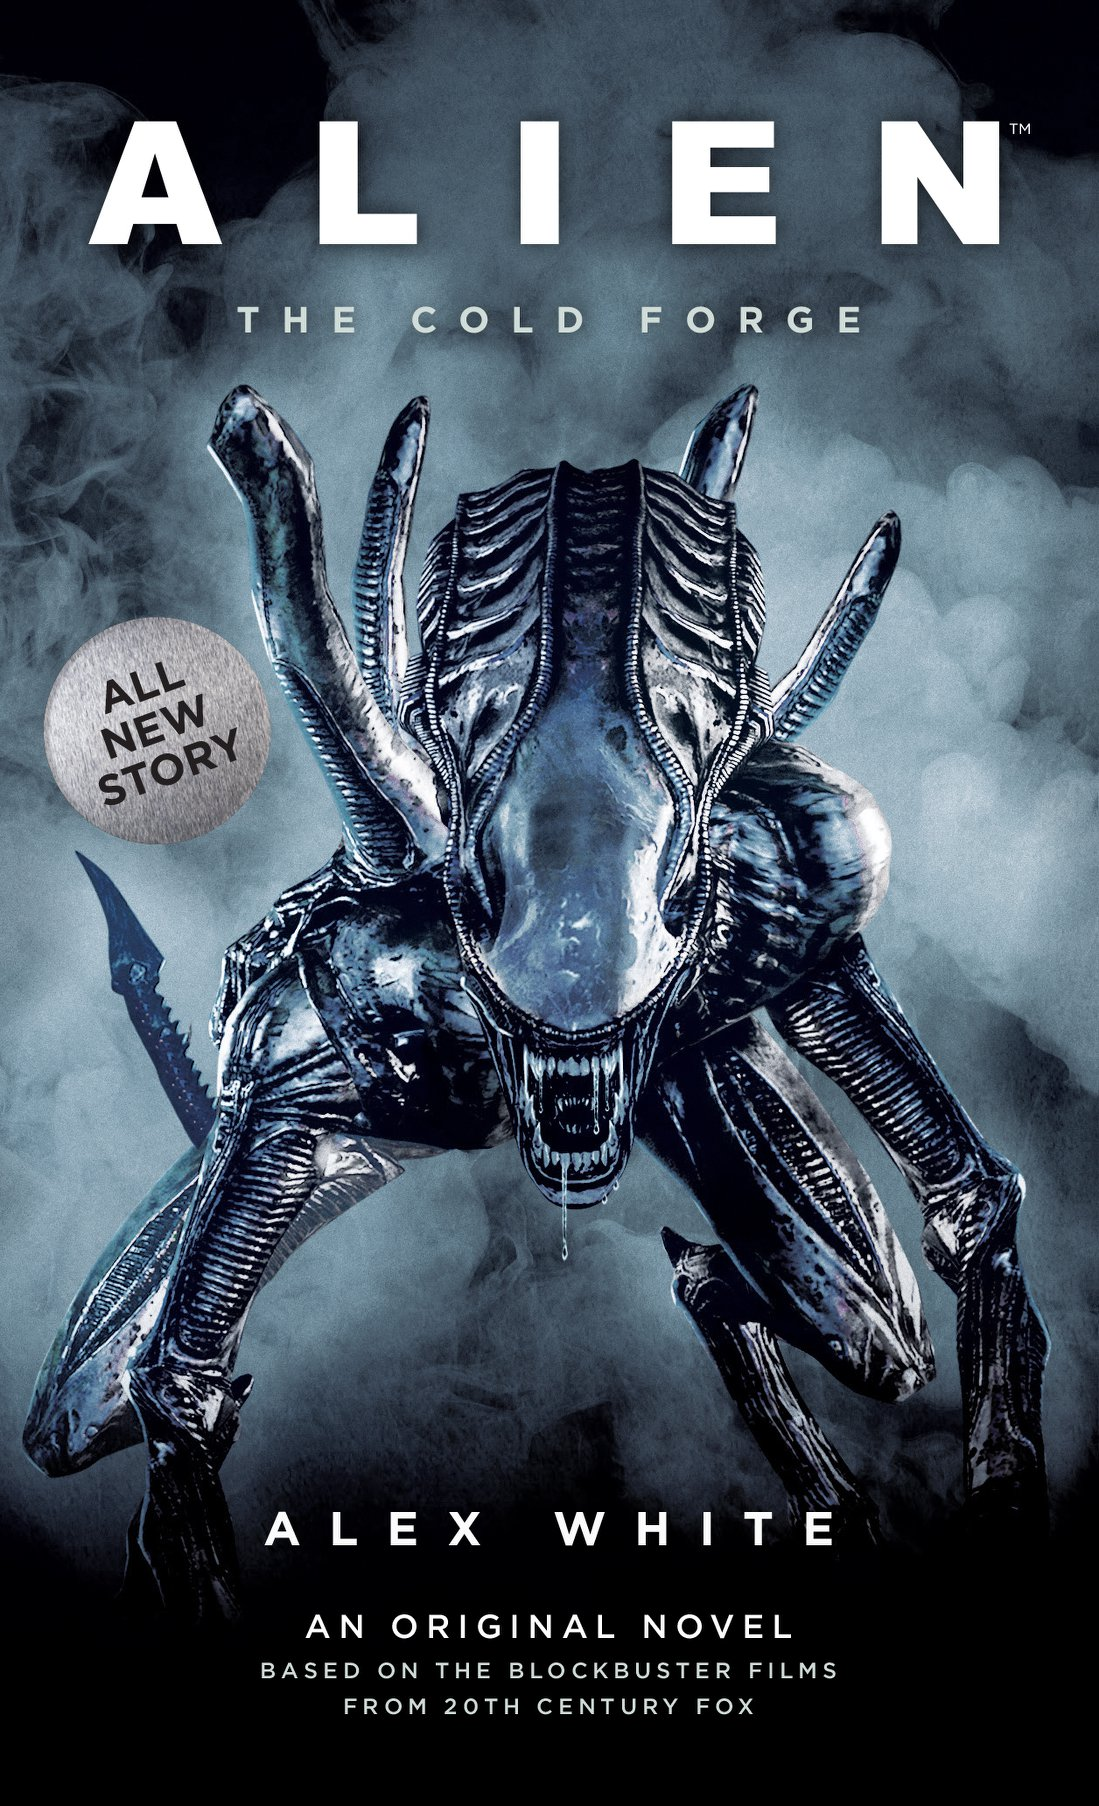 Friday Reads: Alien: The Cold Forge by Alex White